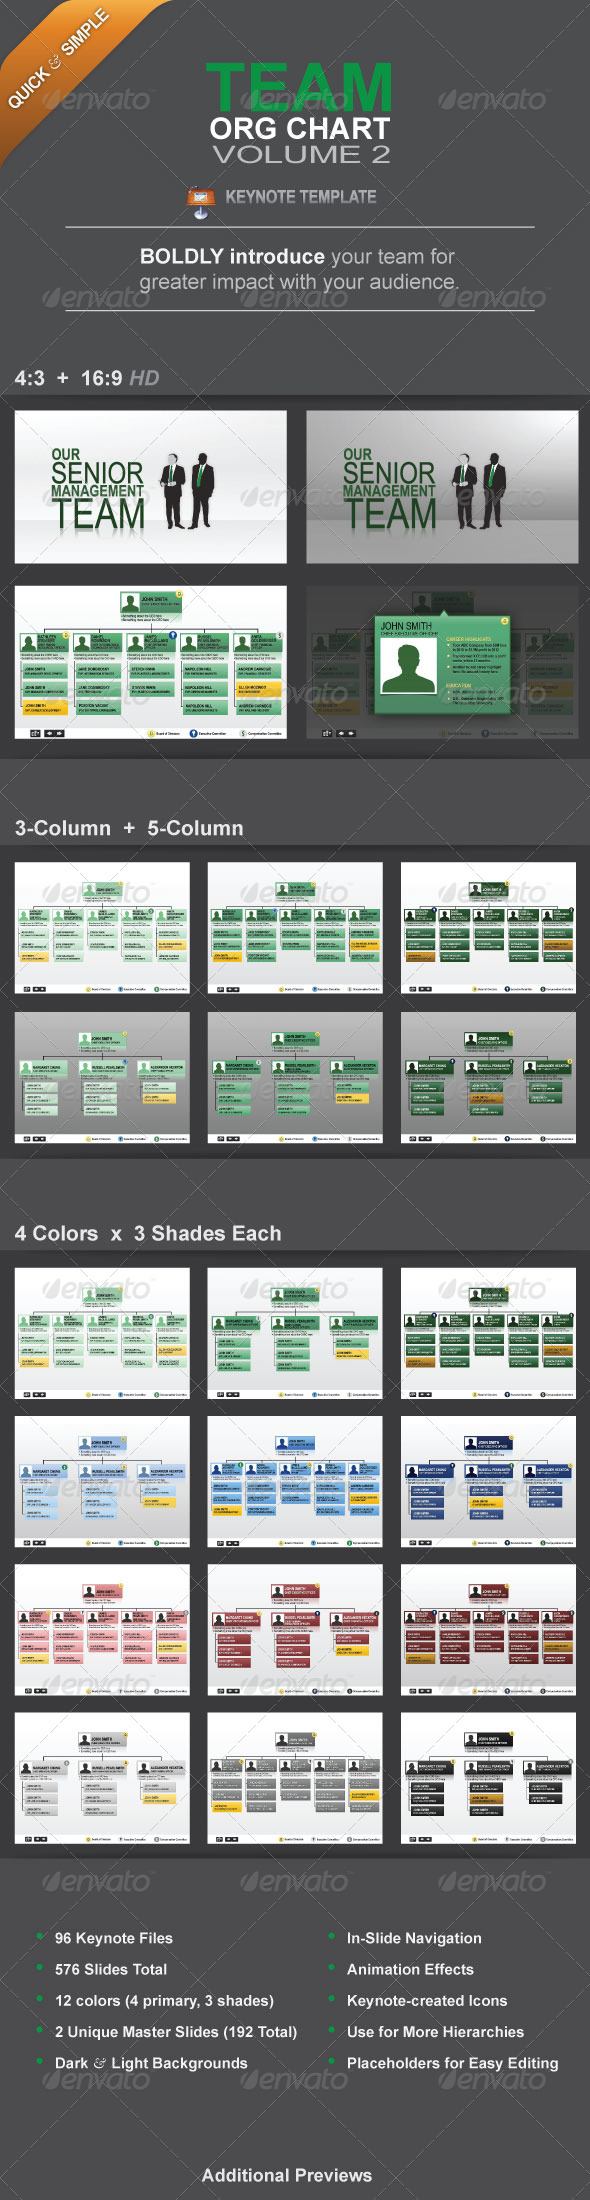 GraphicRiver Team Org Chart Vol 2 5484500